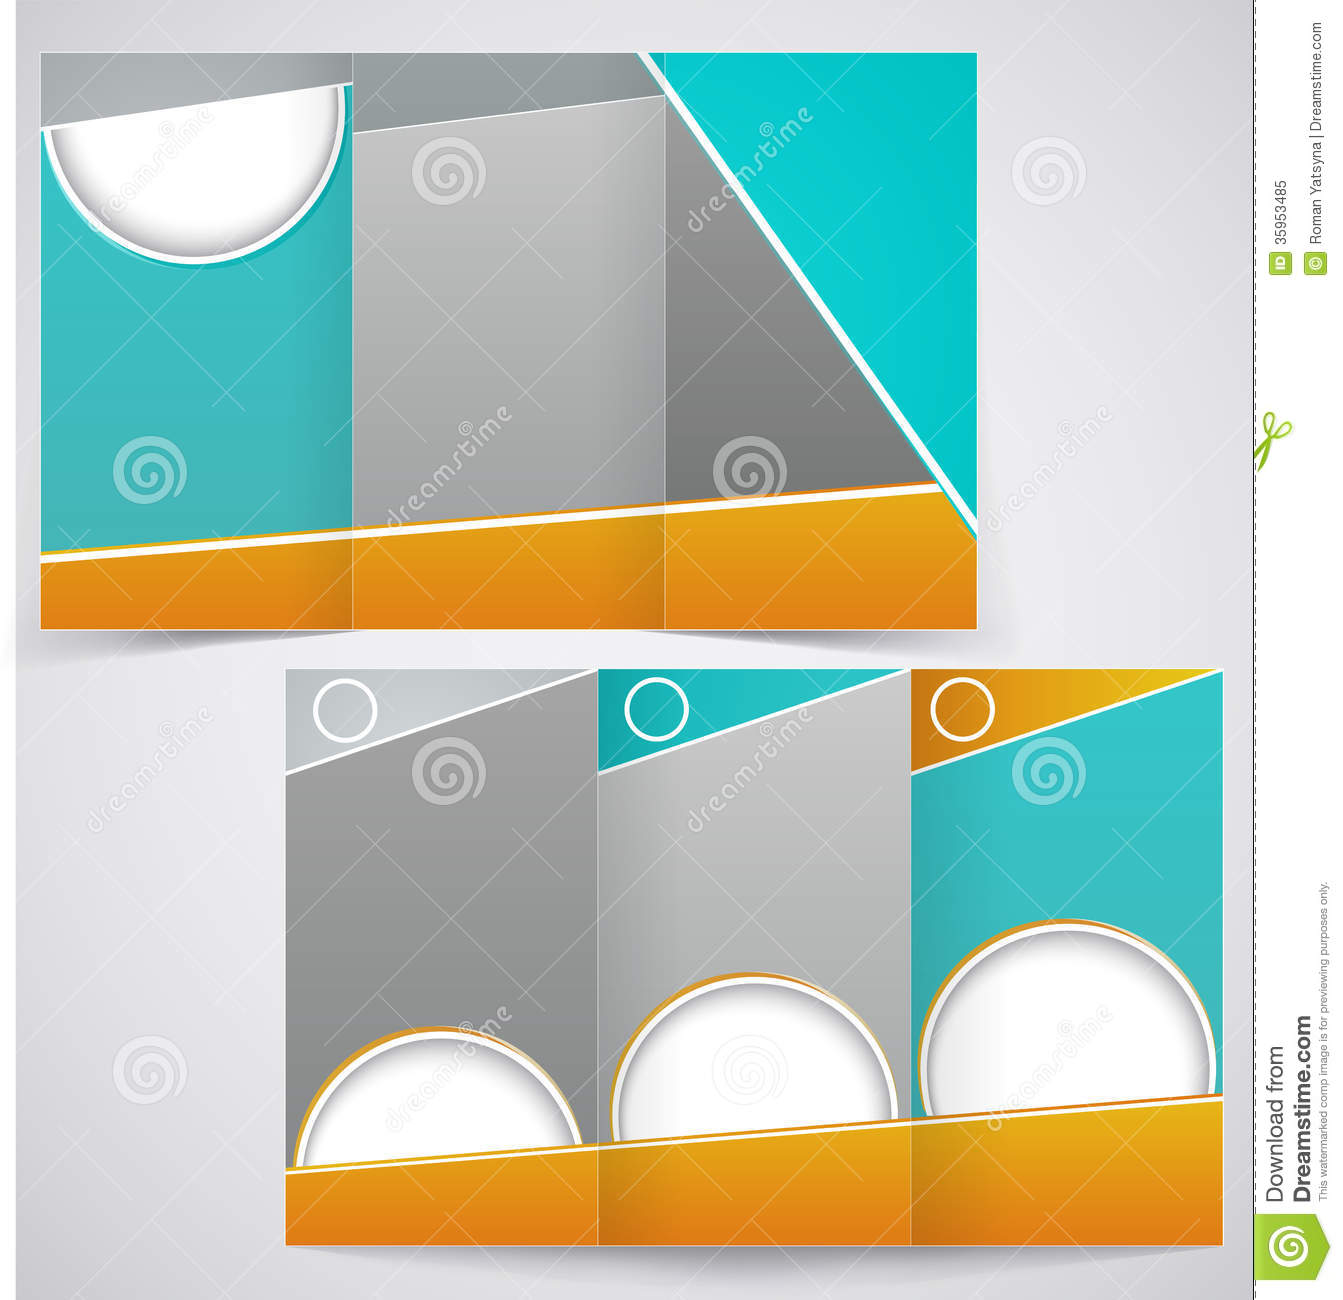 vector brochure layout design green and yello royalty vector brochure layout design green and yello